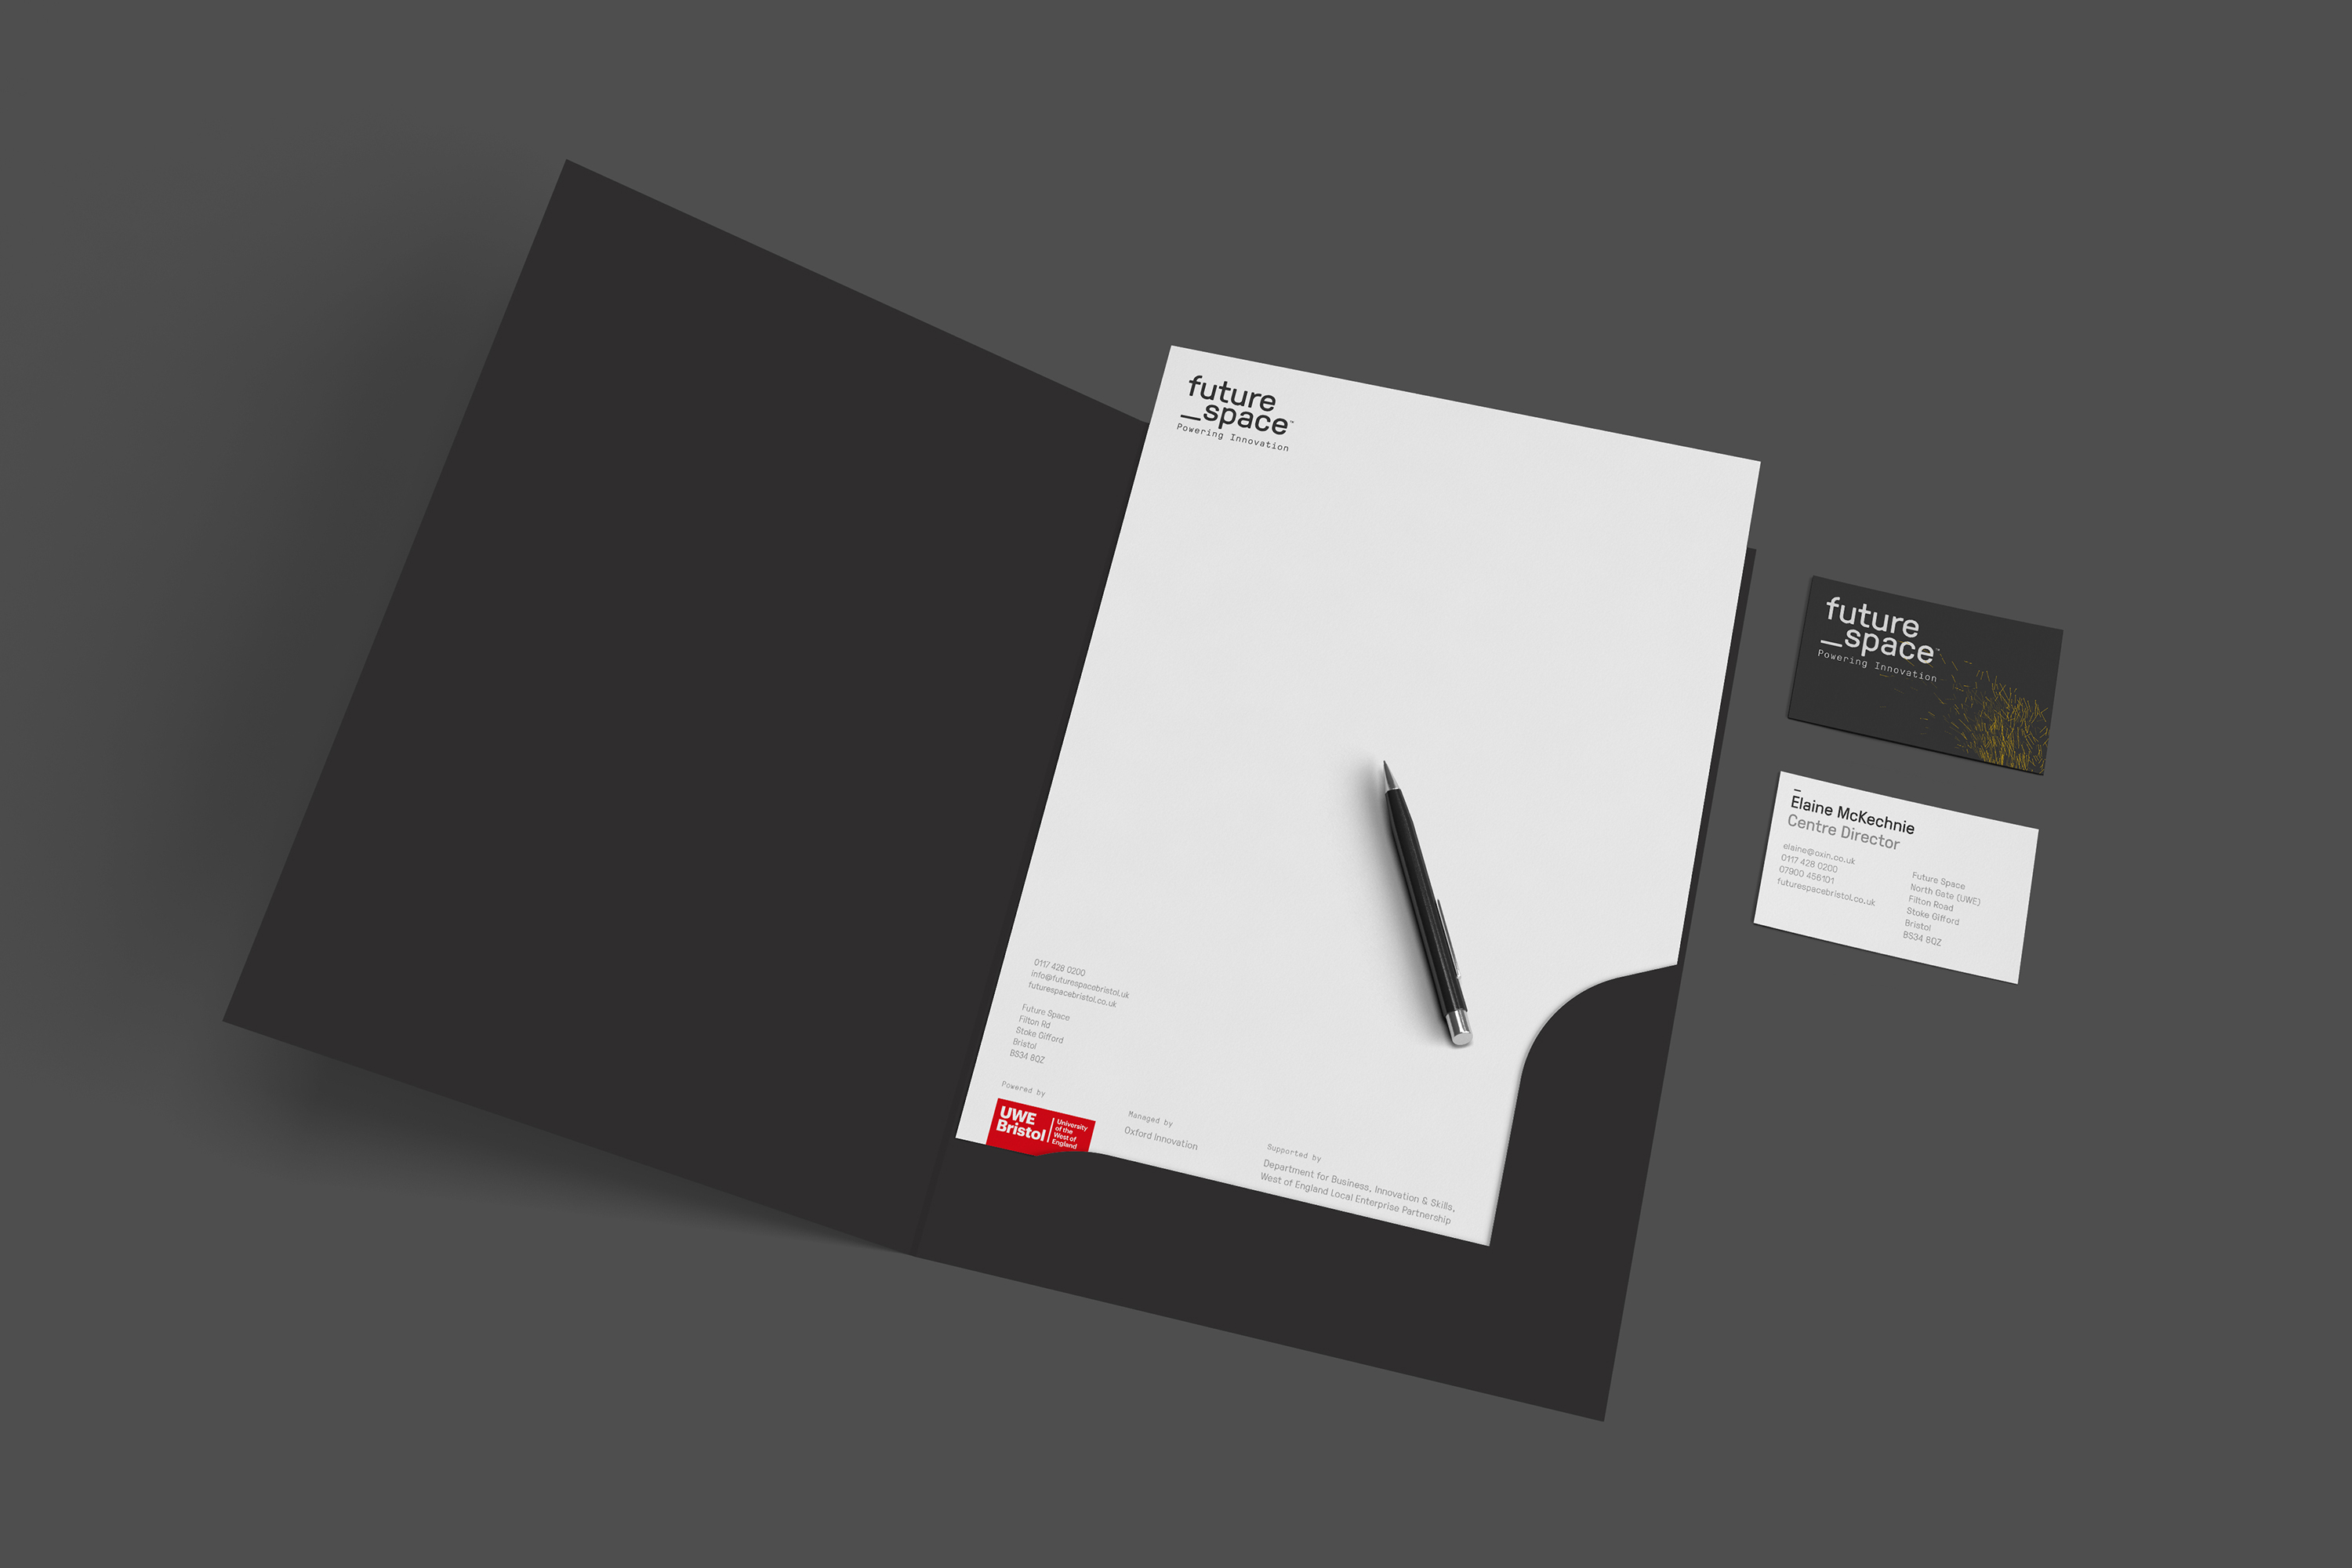 future space stationery design by Fiasco Design